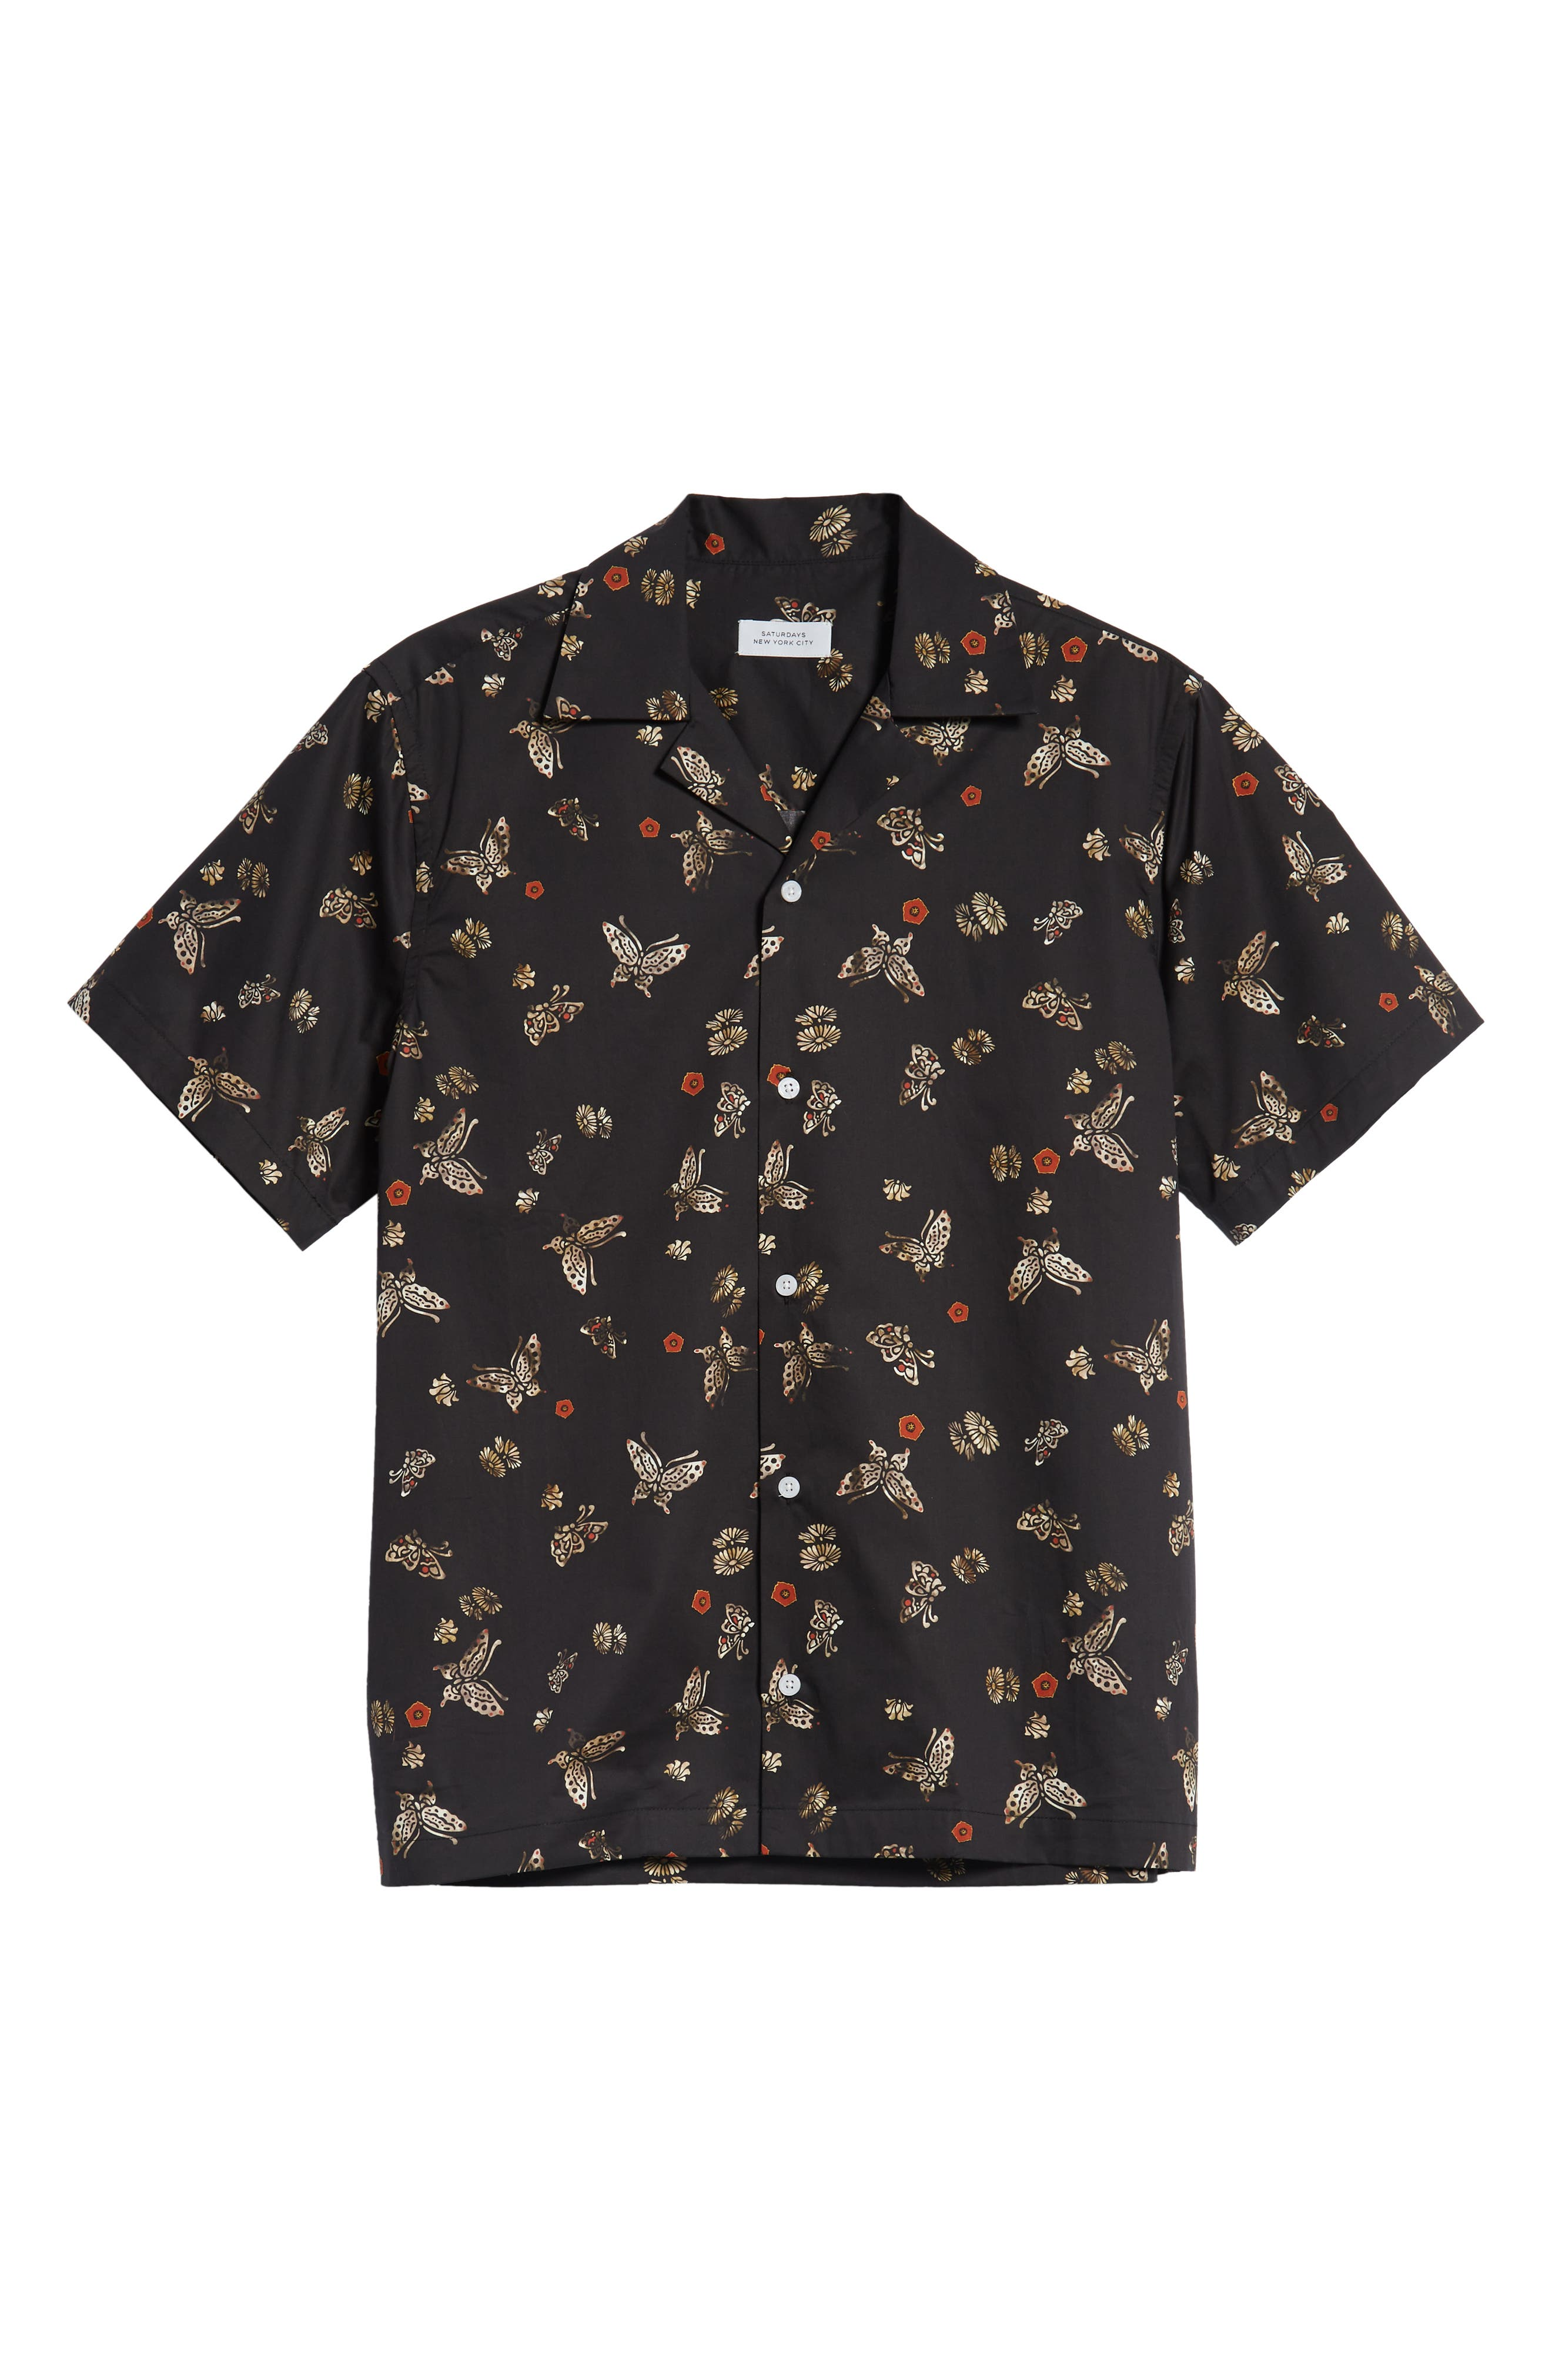 Canty Lacquer Butterfly Camp Shirt,                             Alternate thumbnail 5, color,                             LACQUER BUTTERFLY PRINT